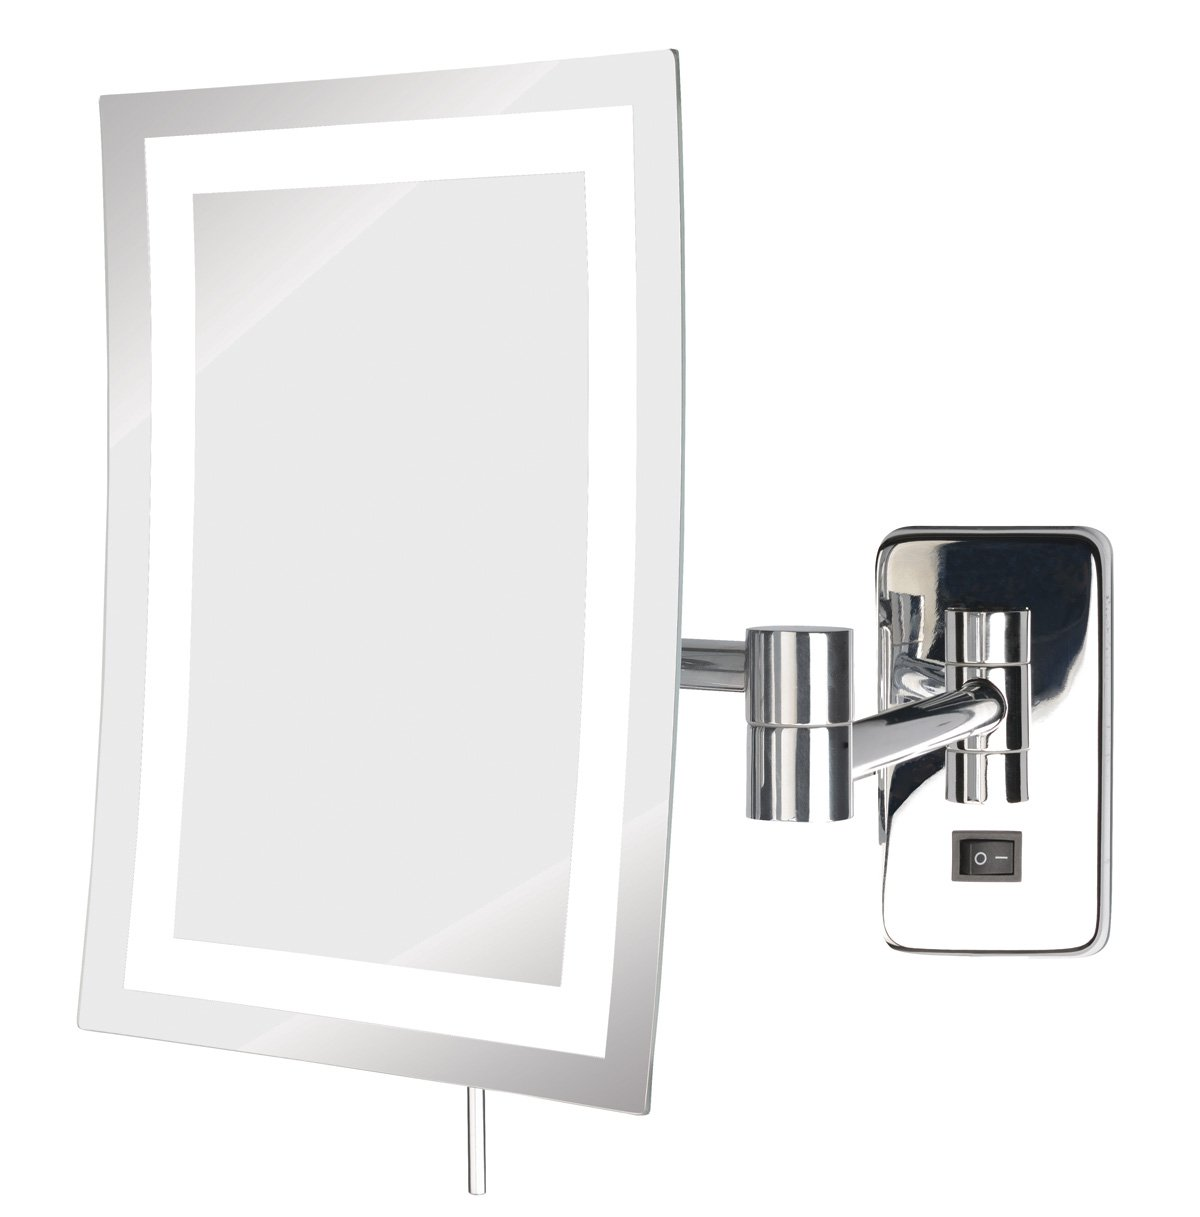 Jerdon JRT710CL 6.5-Inch by 9-Inch LED Lighted Wall Mount Rectangular Makeup Mirror, Chrome Finish